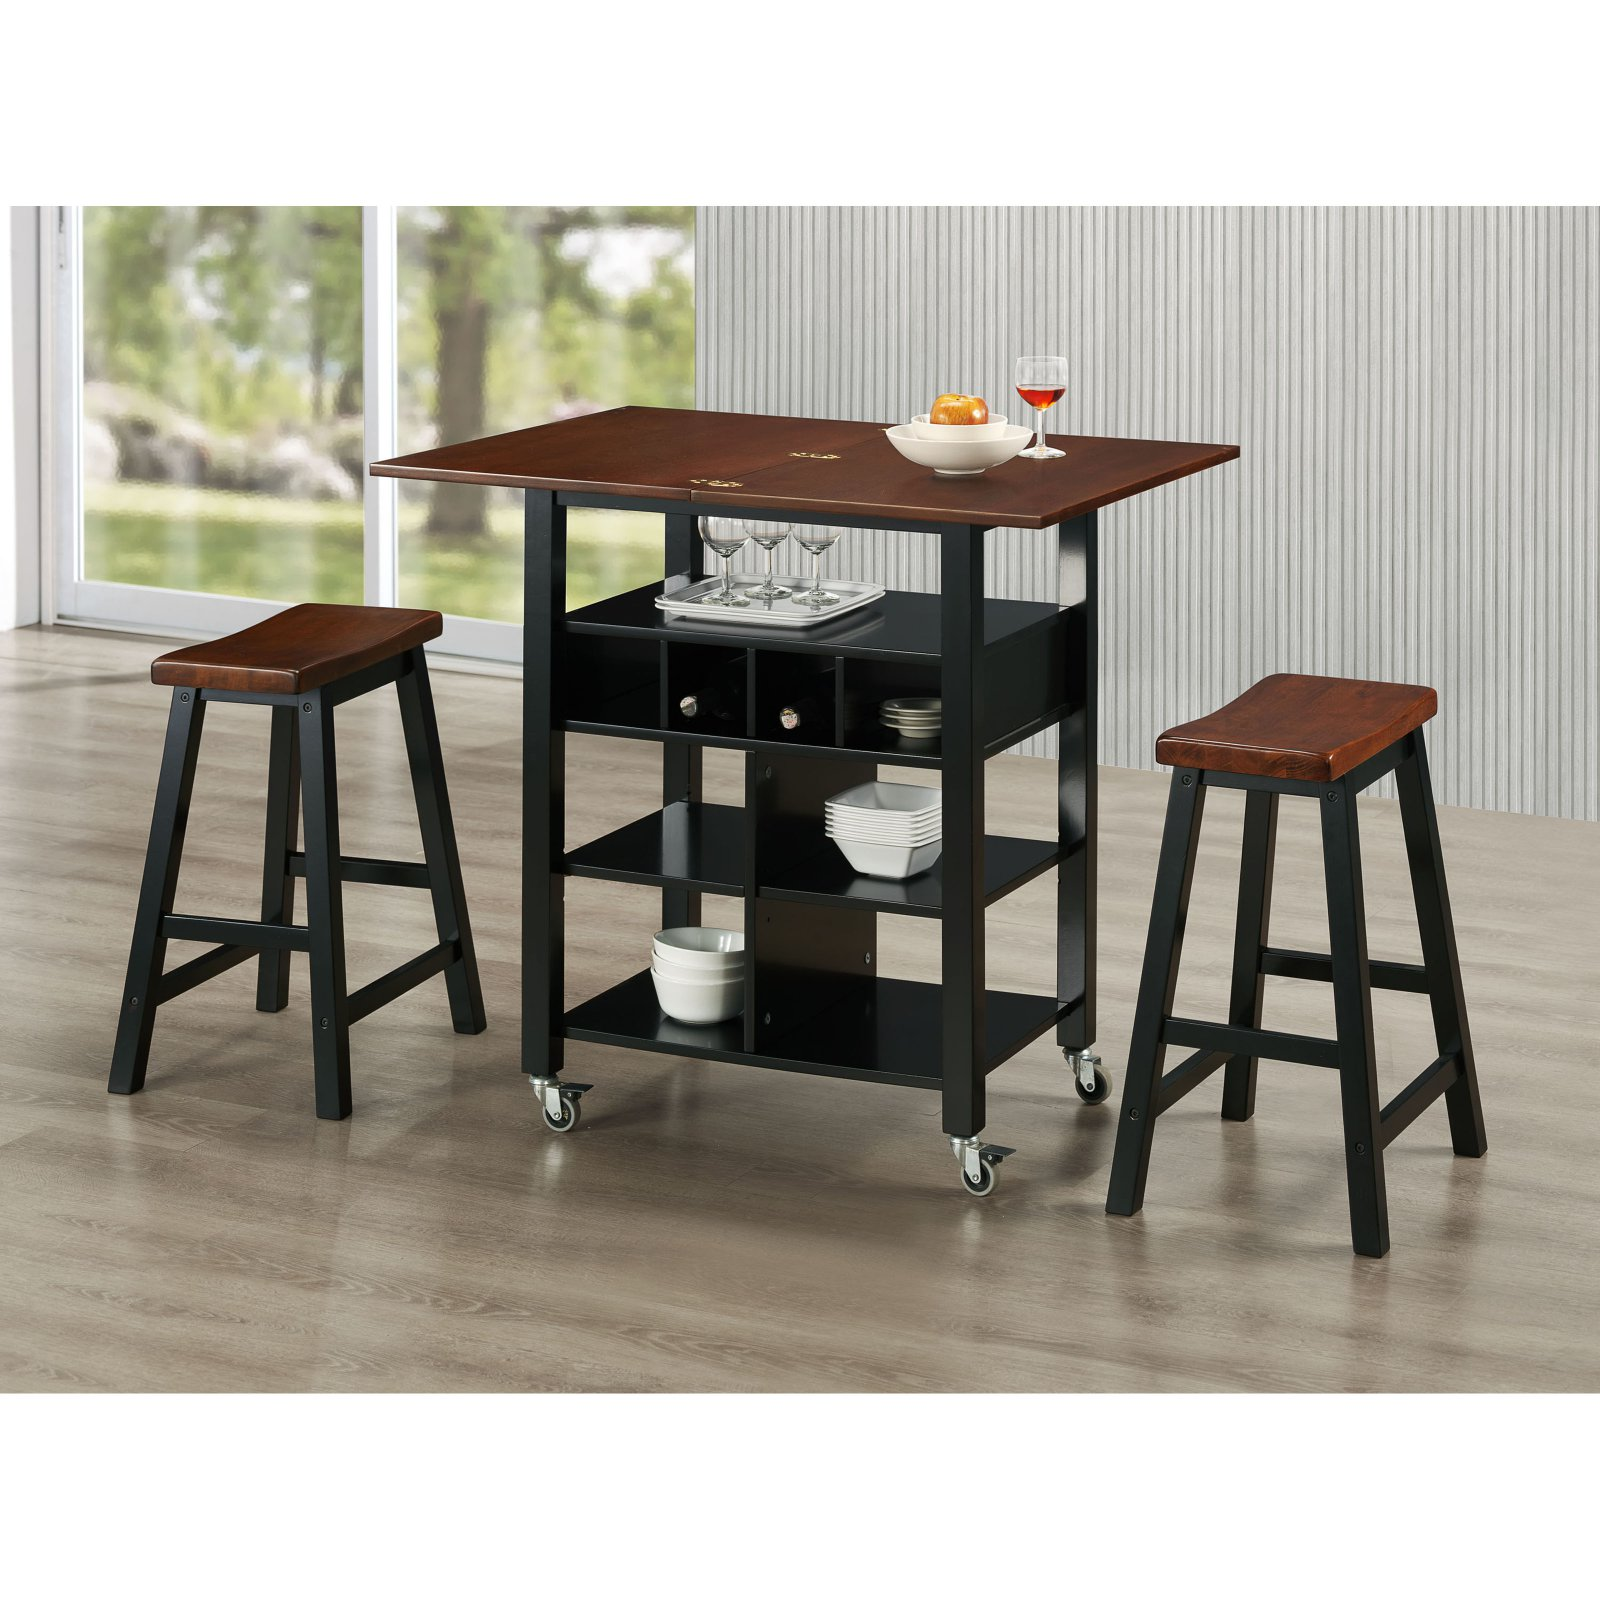 PHOENIX KITCHEN ISLAND AND 2 STOOLS